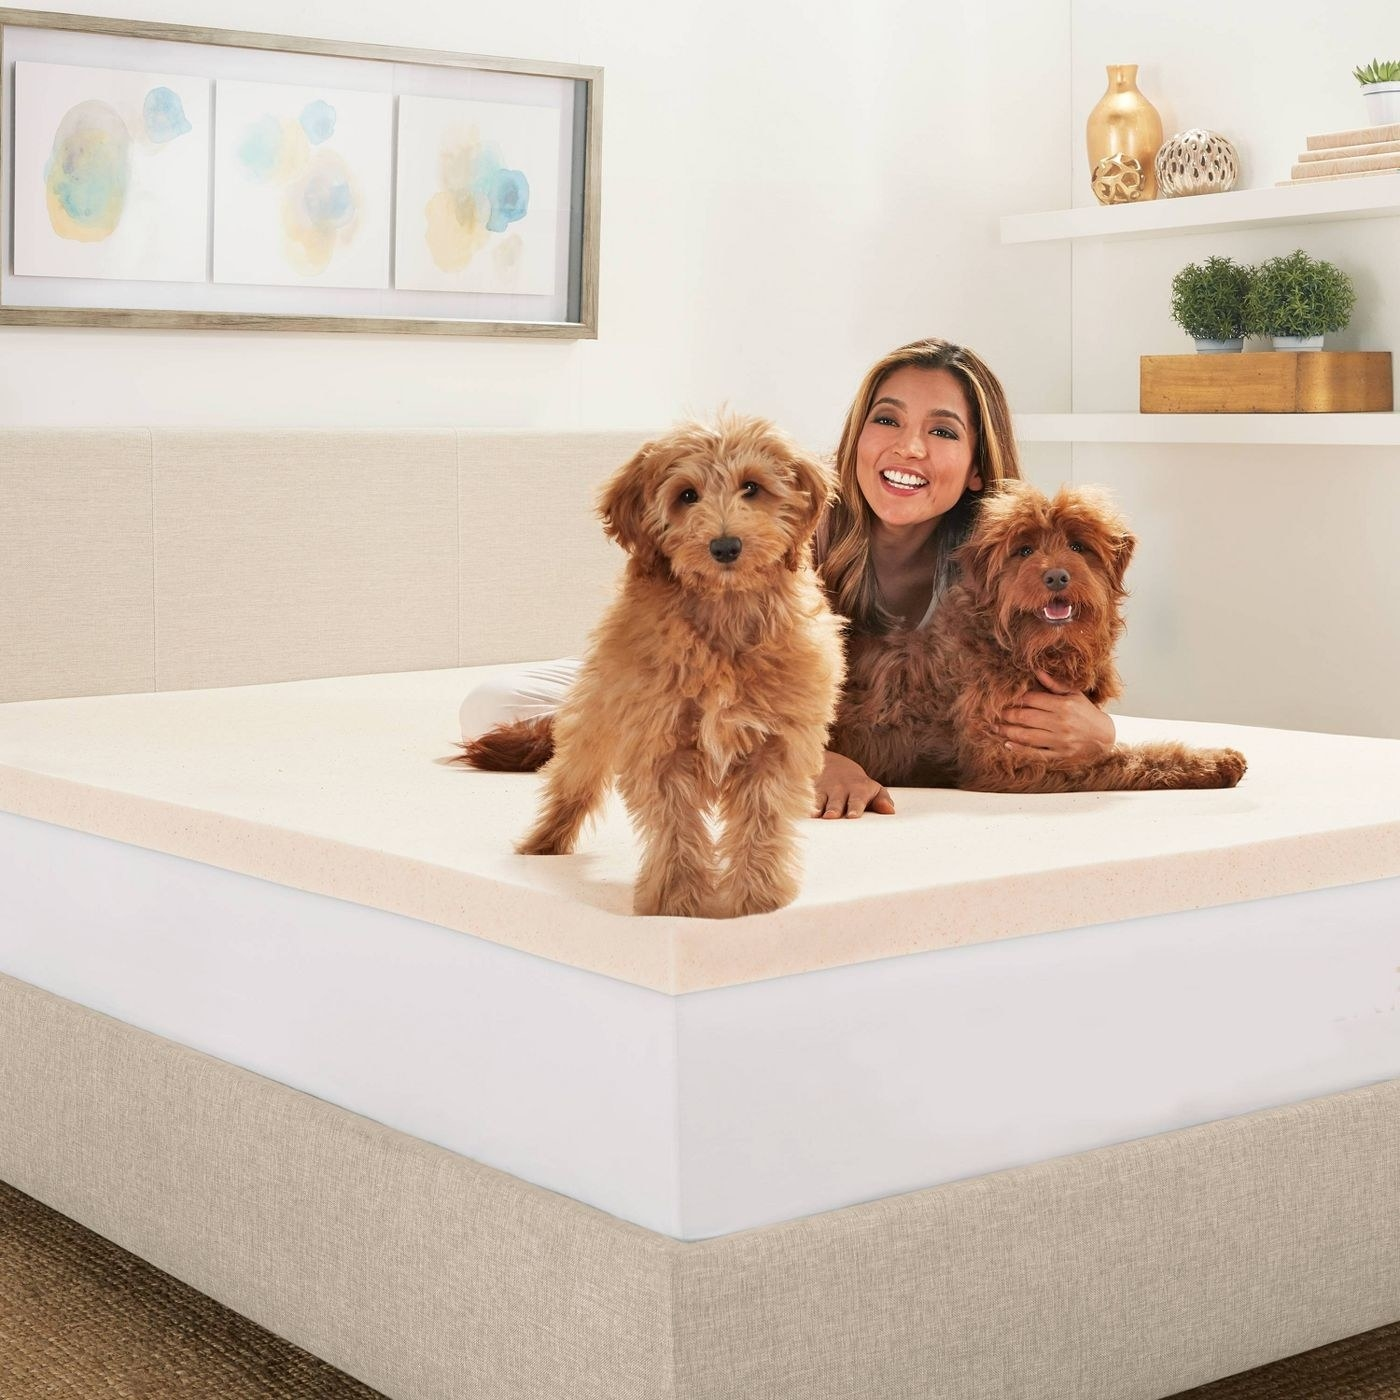 The peach-toned topper on a bed; a model and two very cute model dogs are relaxing on it